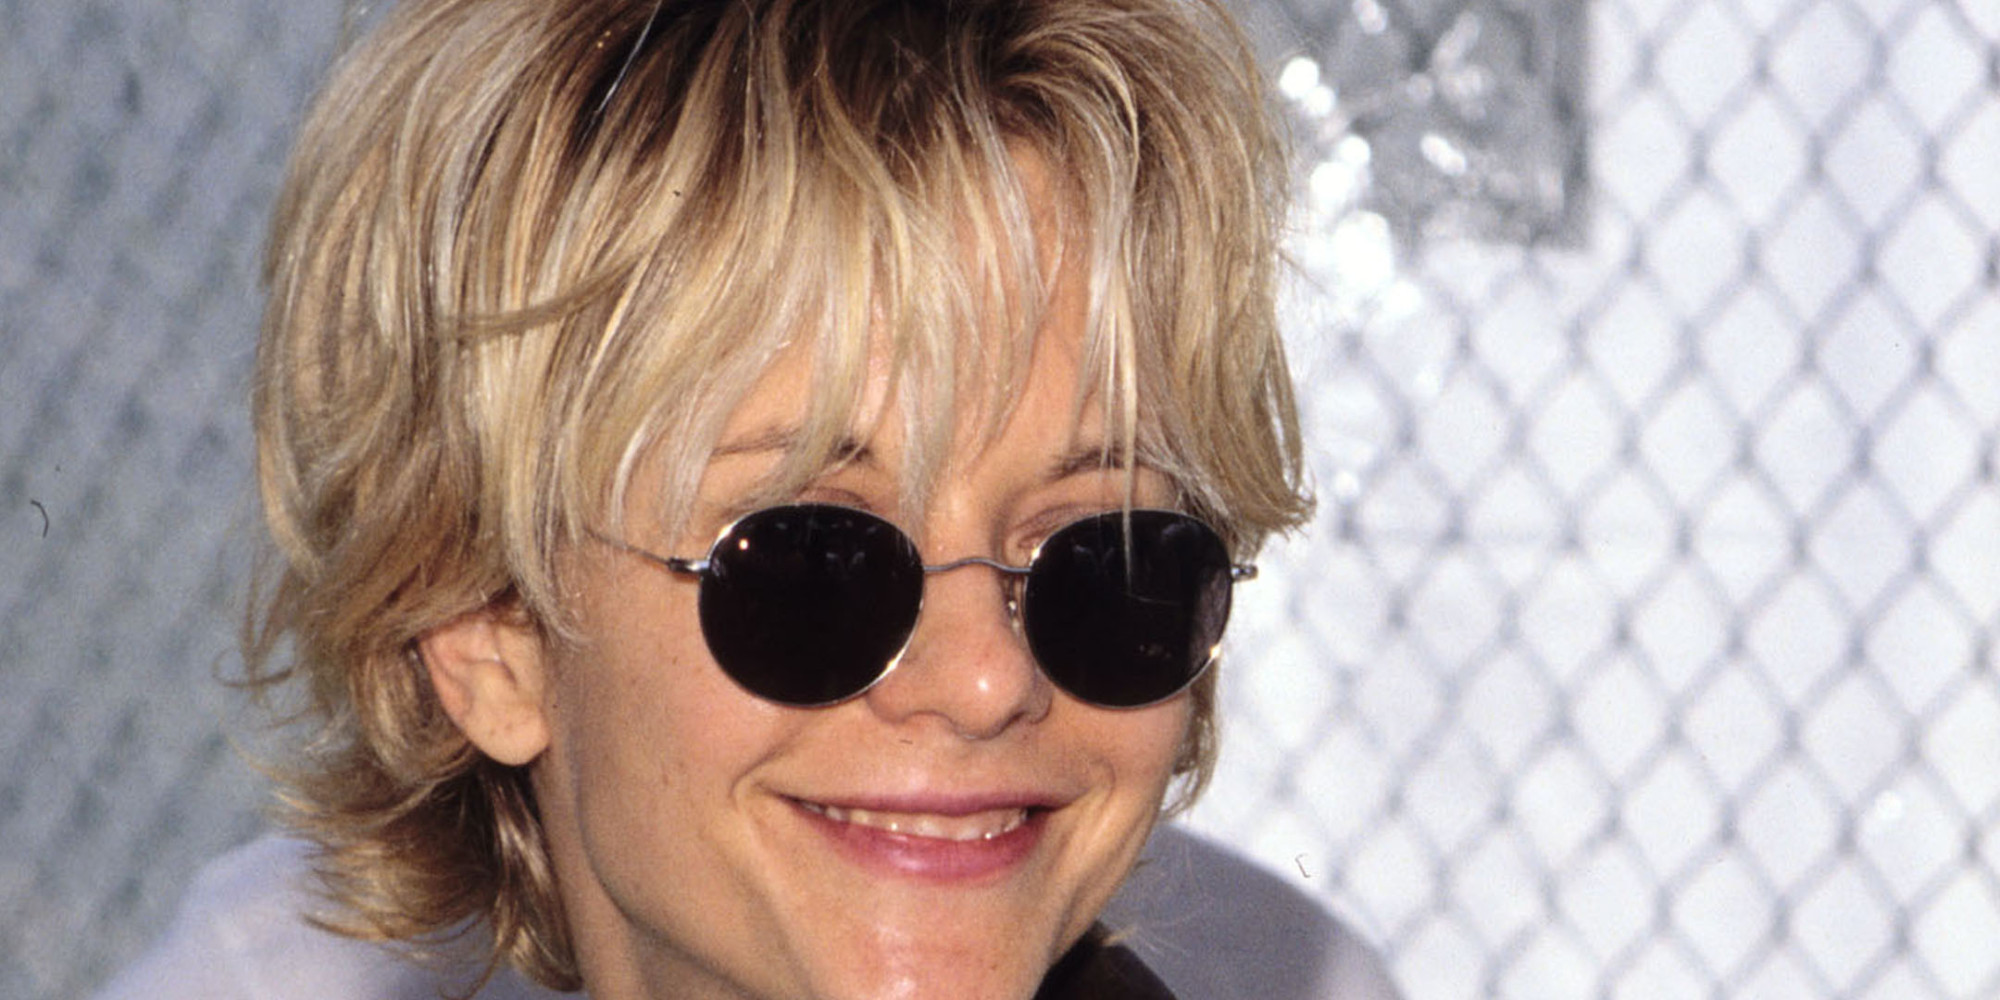 Meg Ryan Hairstyles In Sleepless In Seattle Images | TheCelebrityPix